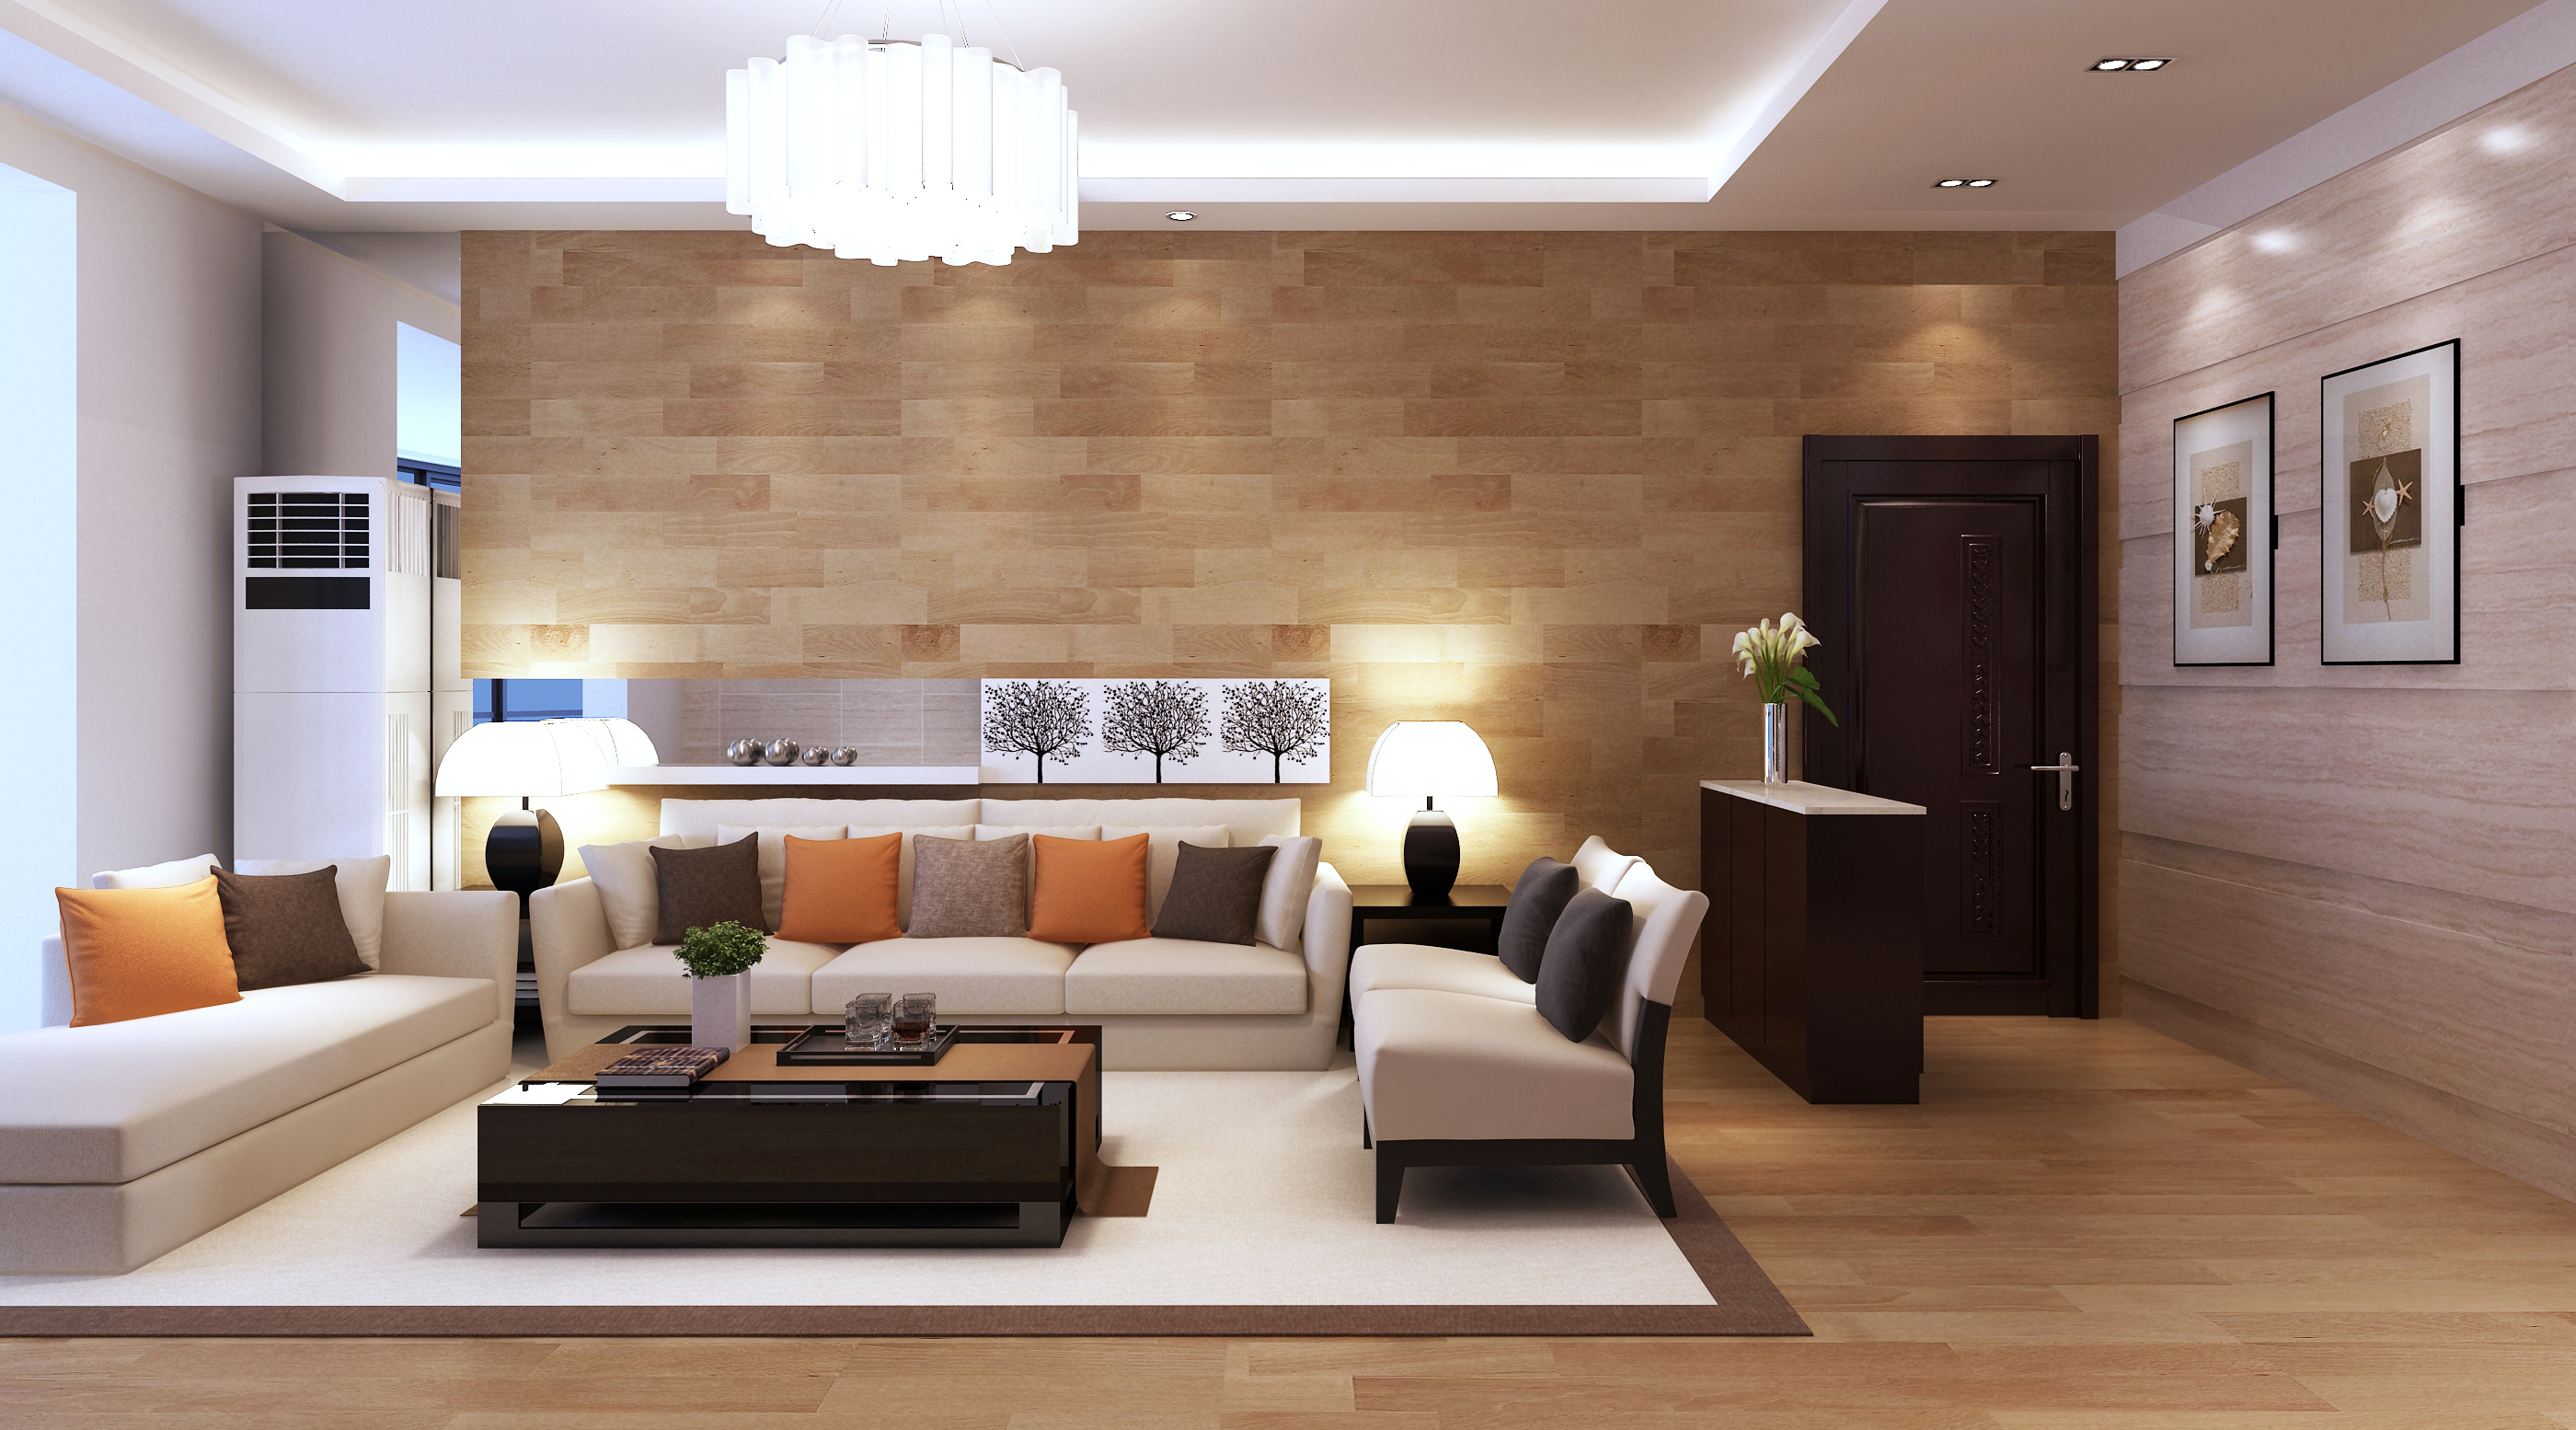 Living Room Model Gorgeous 3D Model Modern Living Room Architectural  Cgtrader Decorating Inspiration